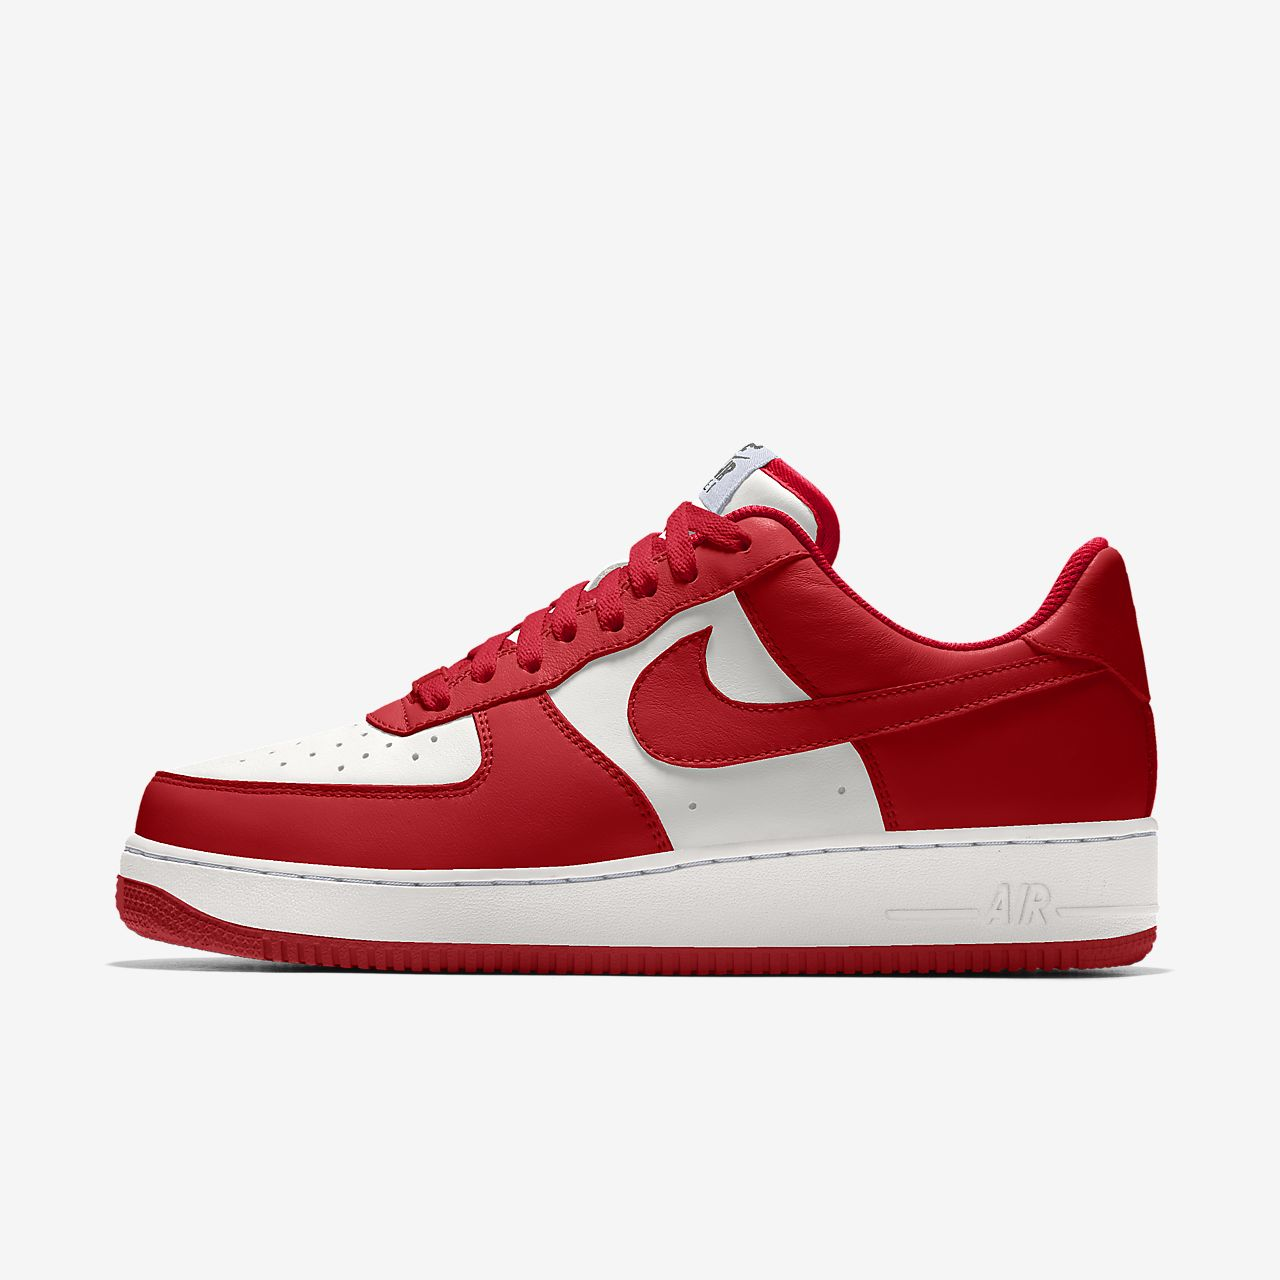 Scarpa personalizzabile Nike Air Force 1 Low By You - Uomo